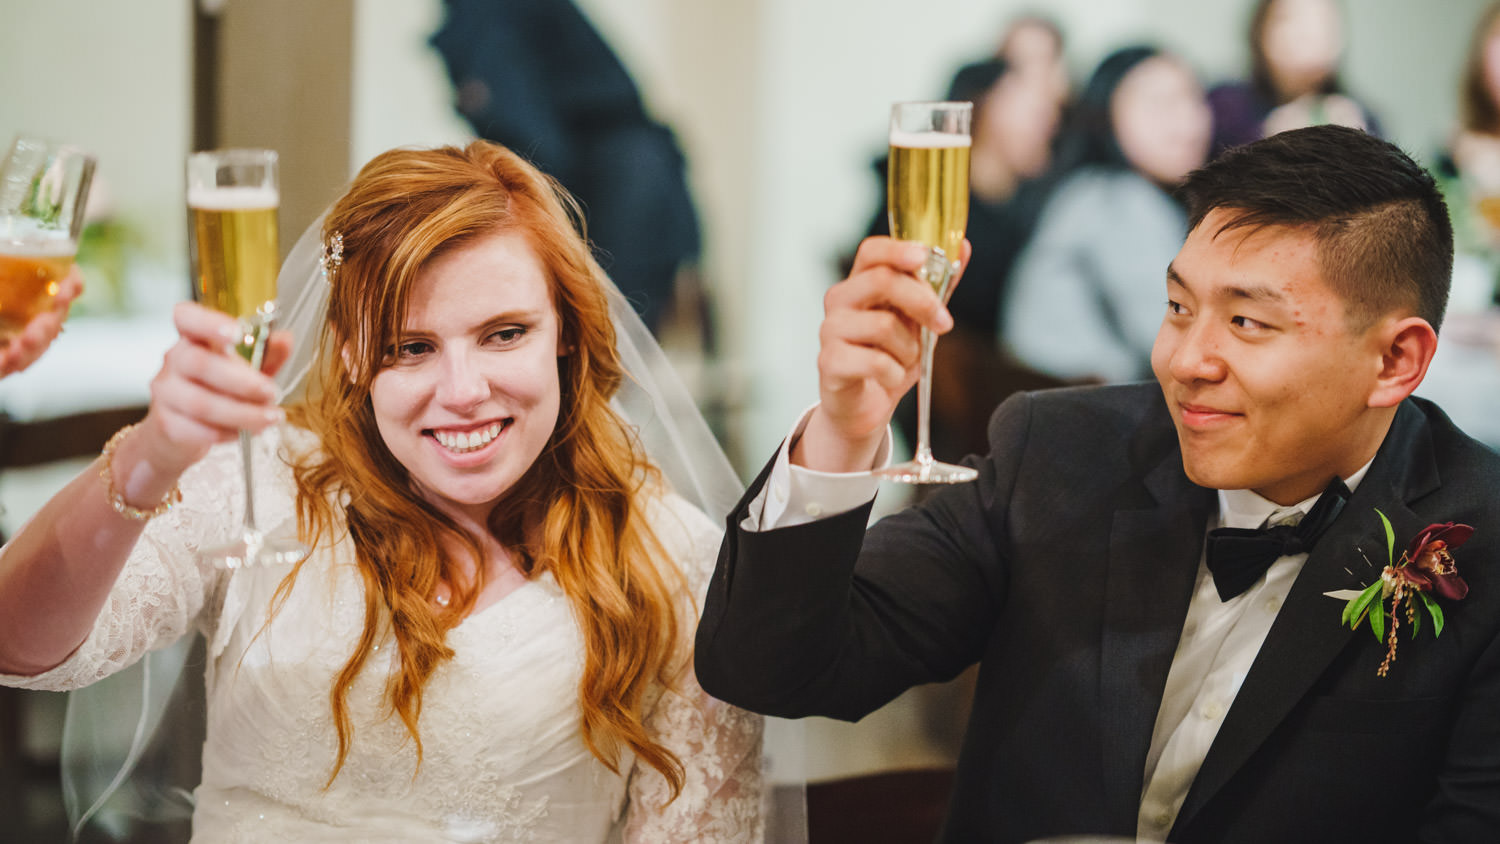 Pierpont Place wedding bride and groom raising champagne glasses photo